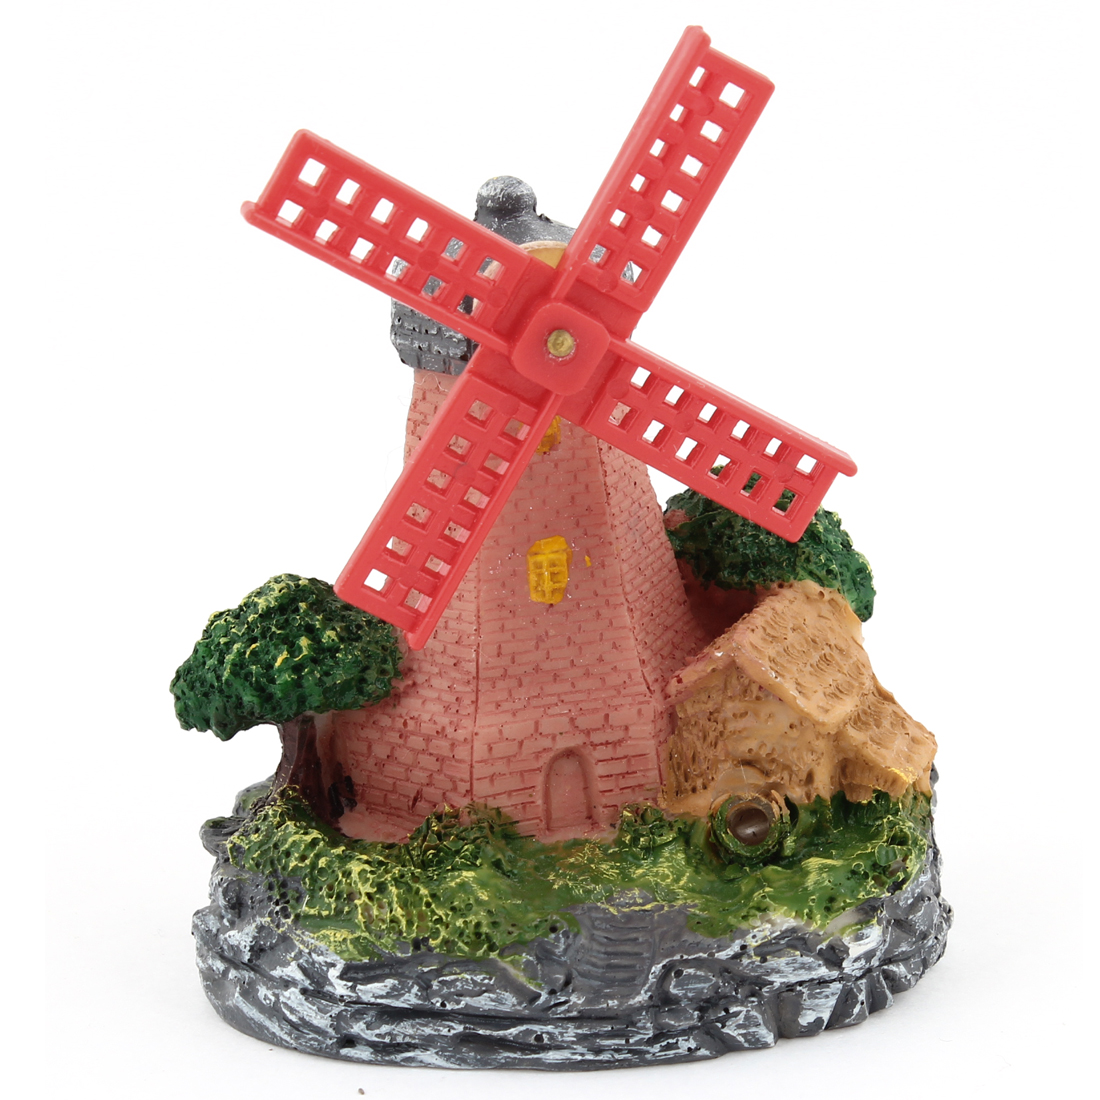 "Artificial Plastic Windmill Resin House Tree Landscaping Decoration 3.8"" High"